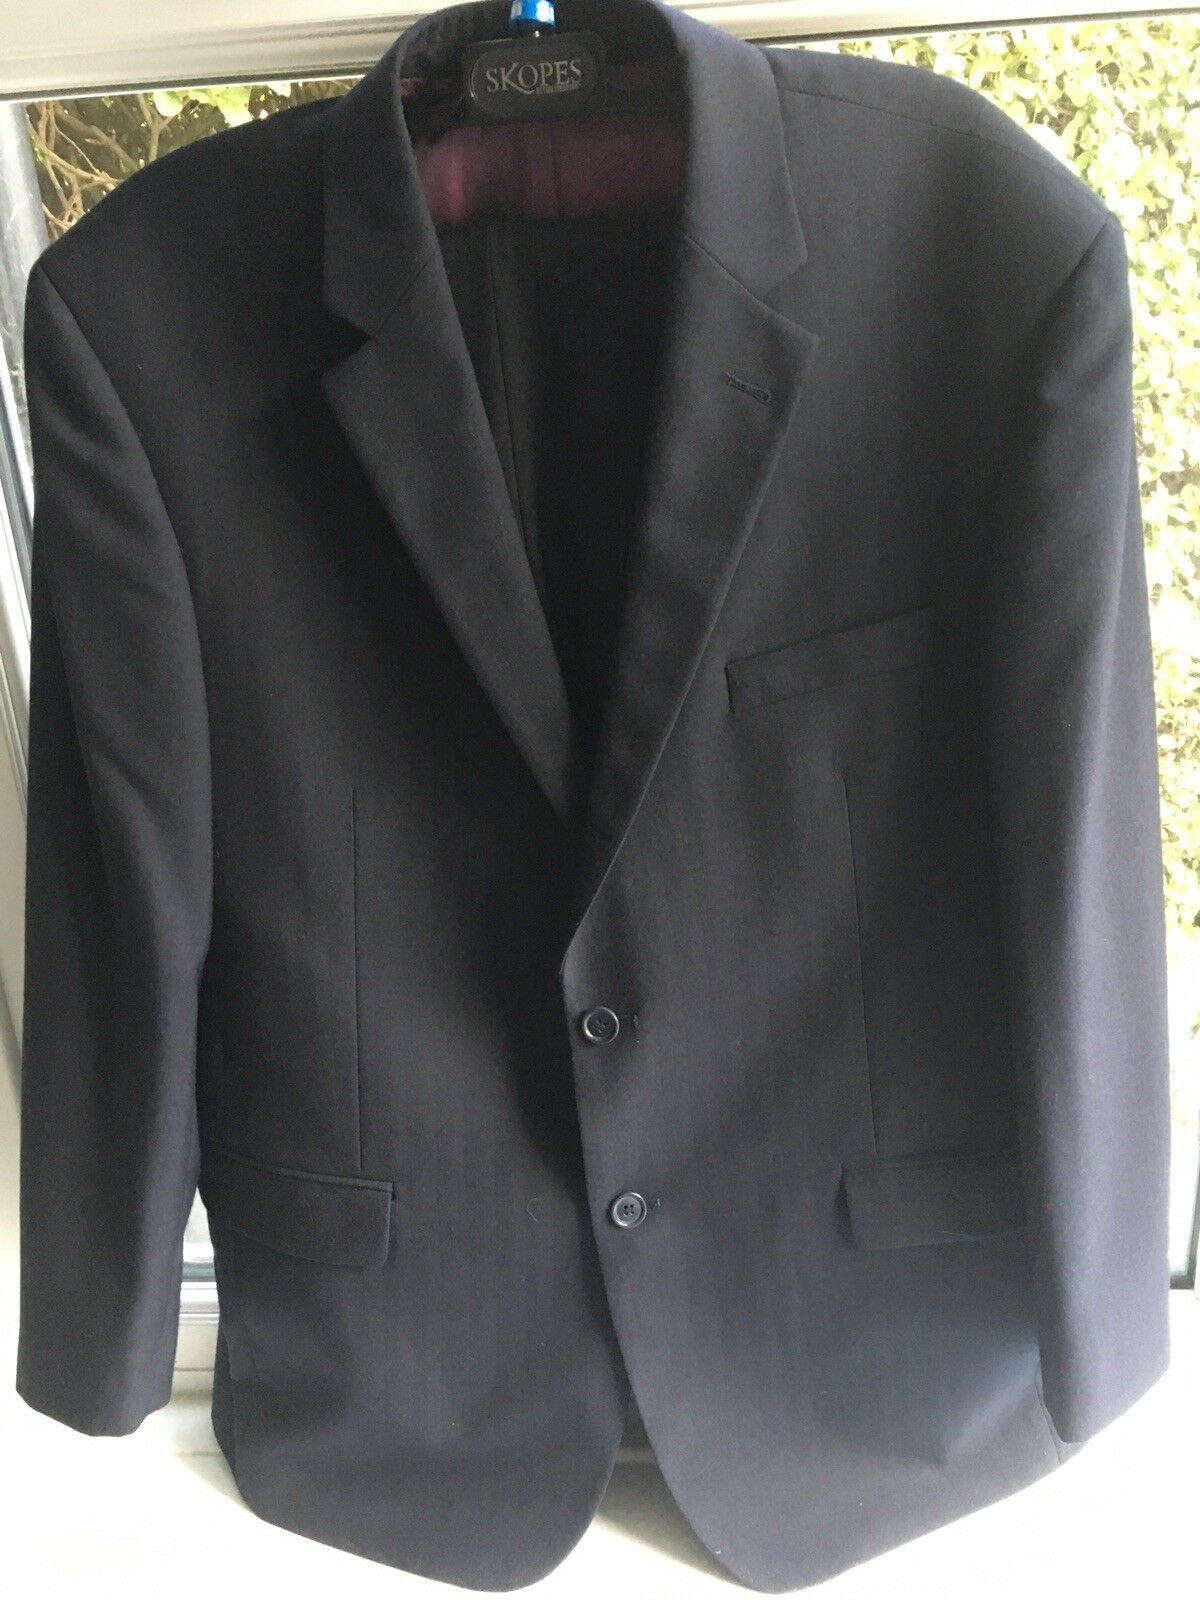 Herren Dark Blau Suit 44S Skopes